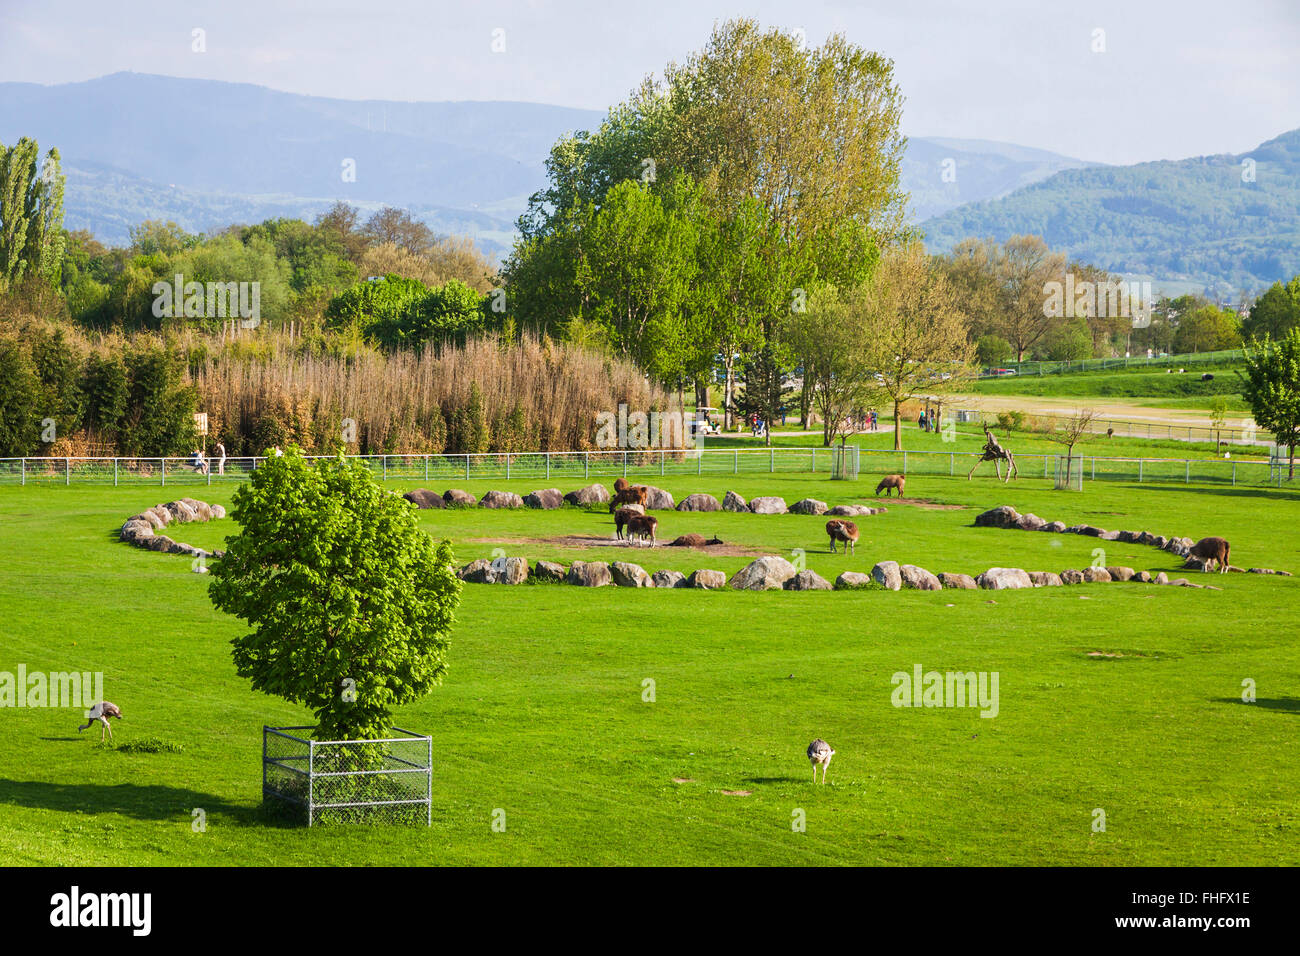 Mundenhof, the outdoor zoological garden in Freiburg im Breisgau city, Germany. The zoo is open 24/7. There is no - Stock Image